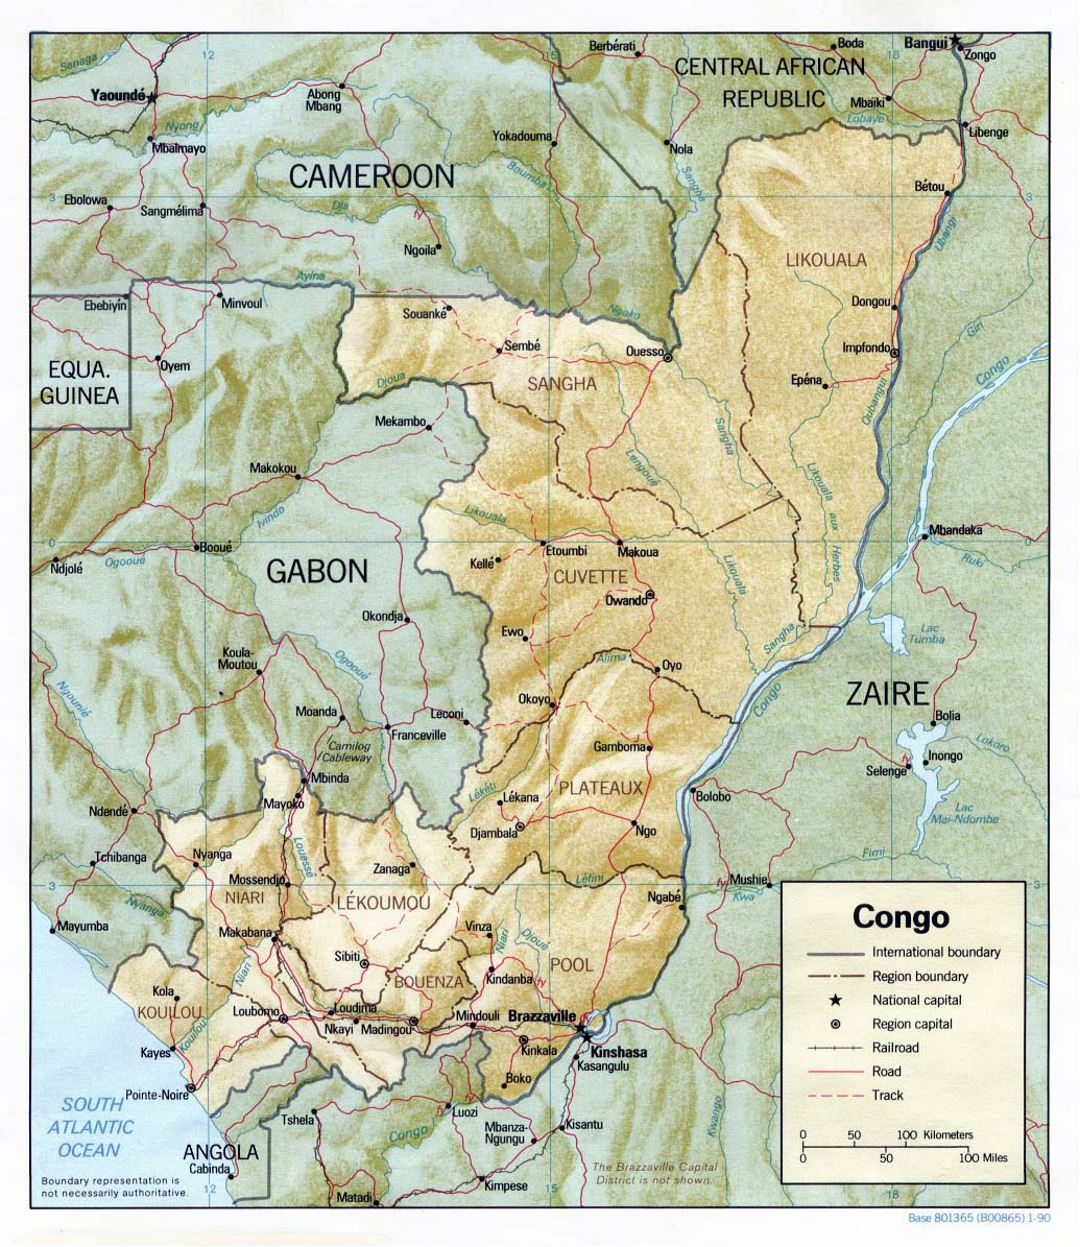 Detailed political and administrative map of Congo with relief, roads, railroads and major cities - 1990